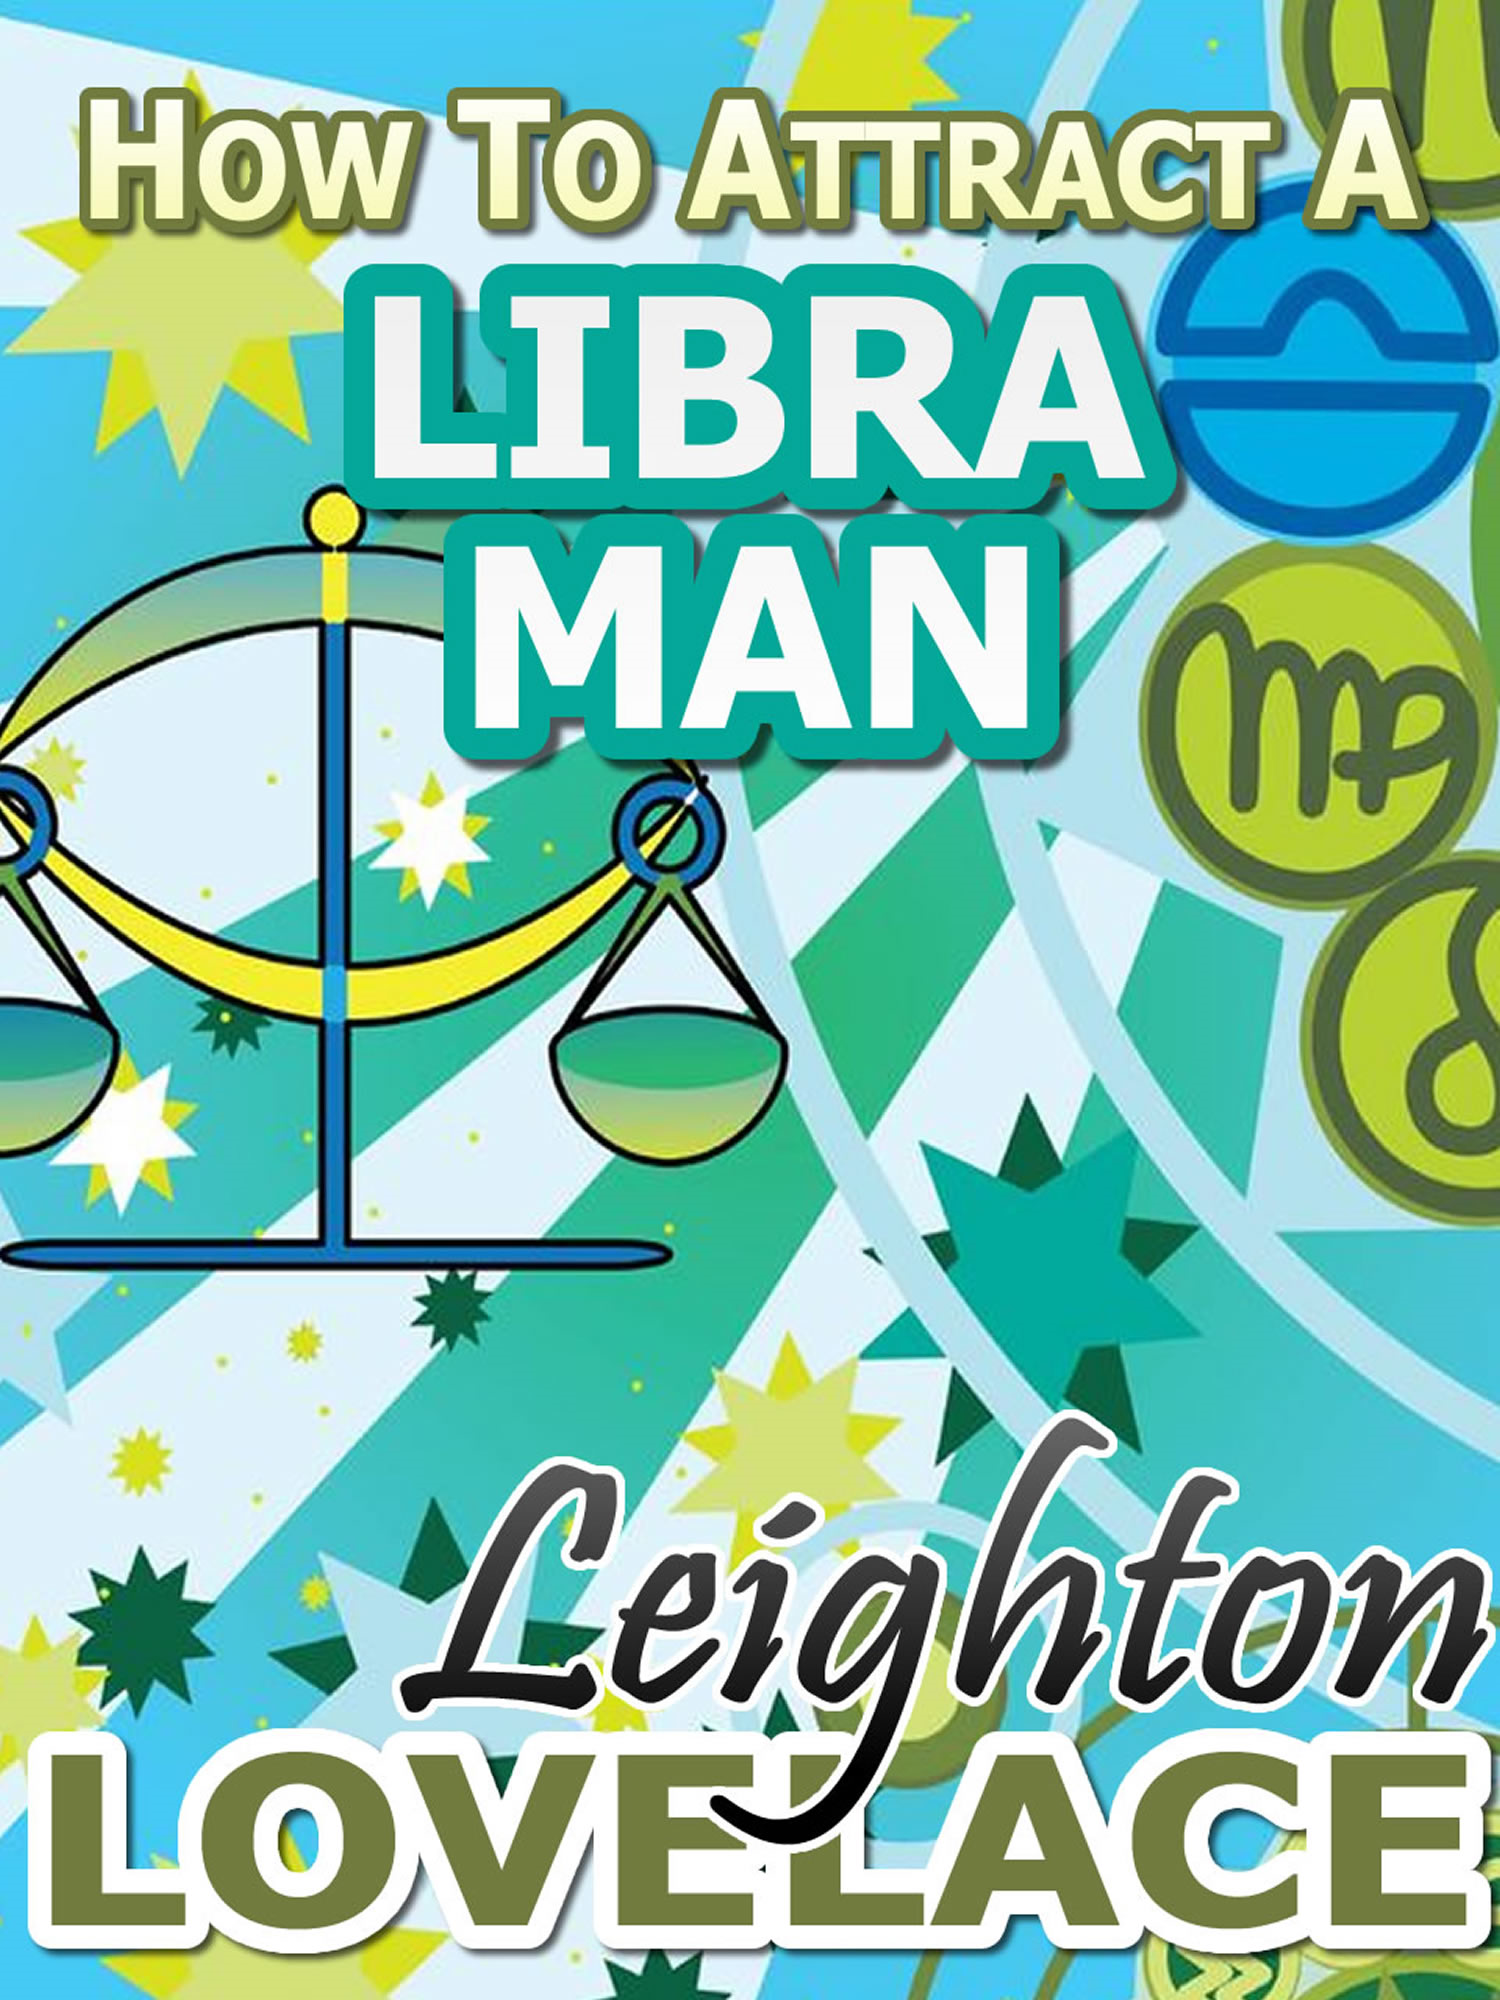 How To Attract A Libra Man - The Astrology for Lovers Guide to Understanding Libra Men, Horoscope Compatibility Tips and Much More